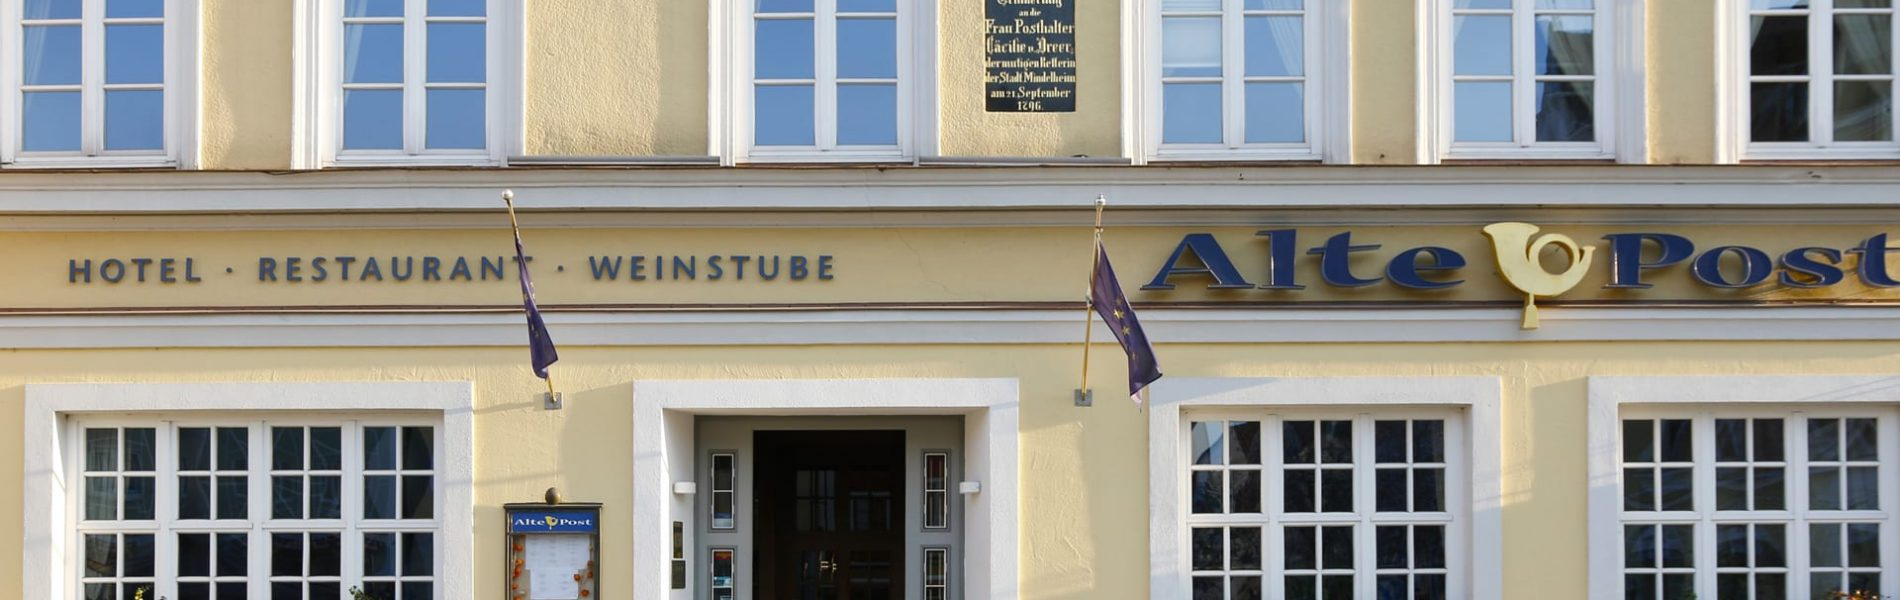 Hotel alte Post Eingang